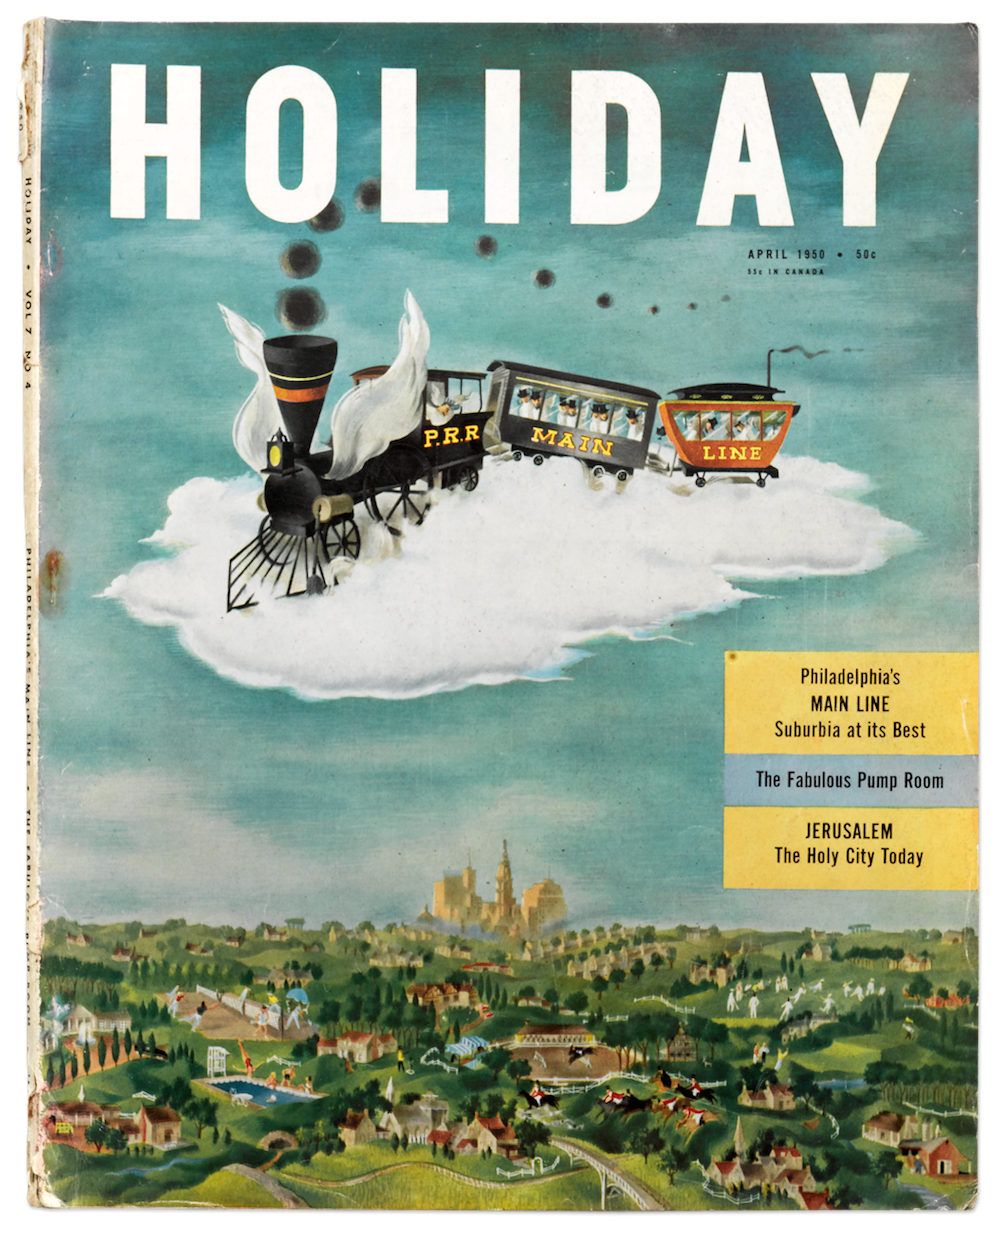 HolidayMagazine.png